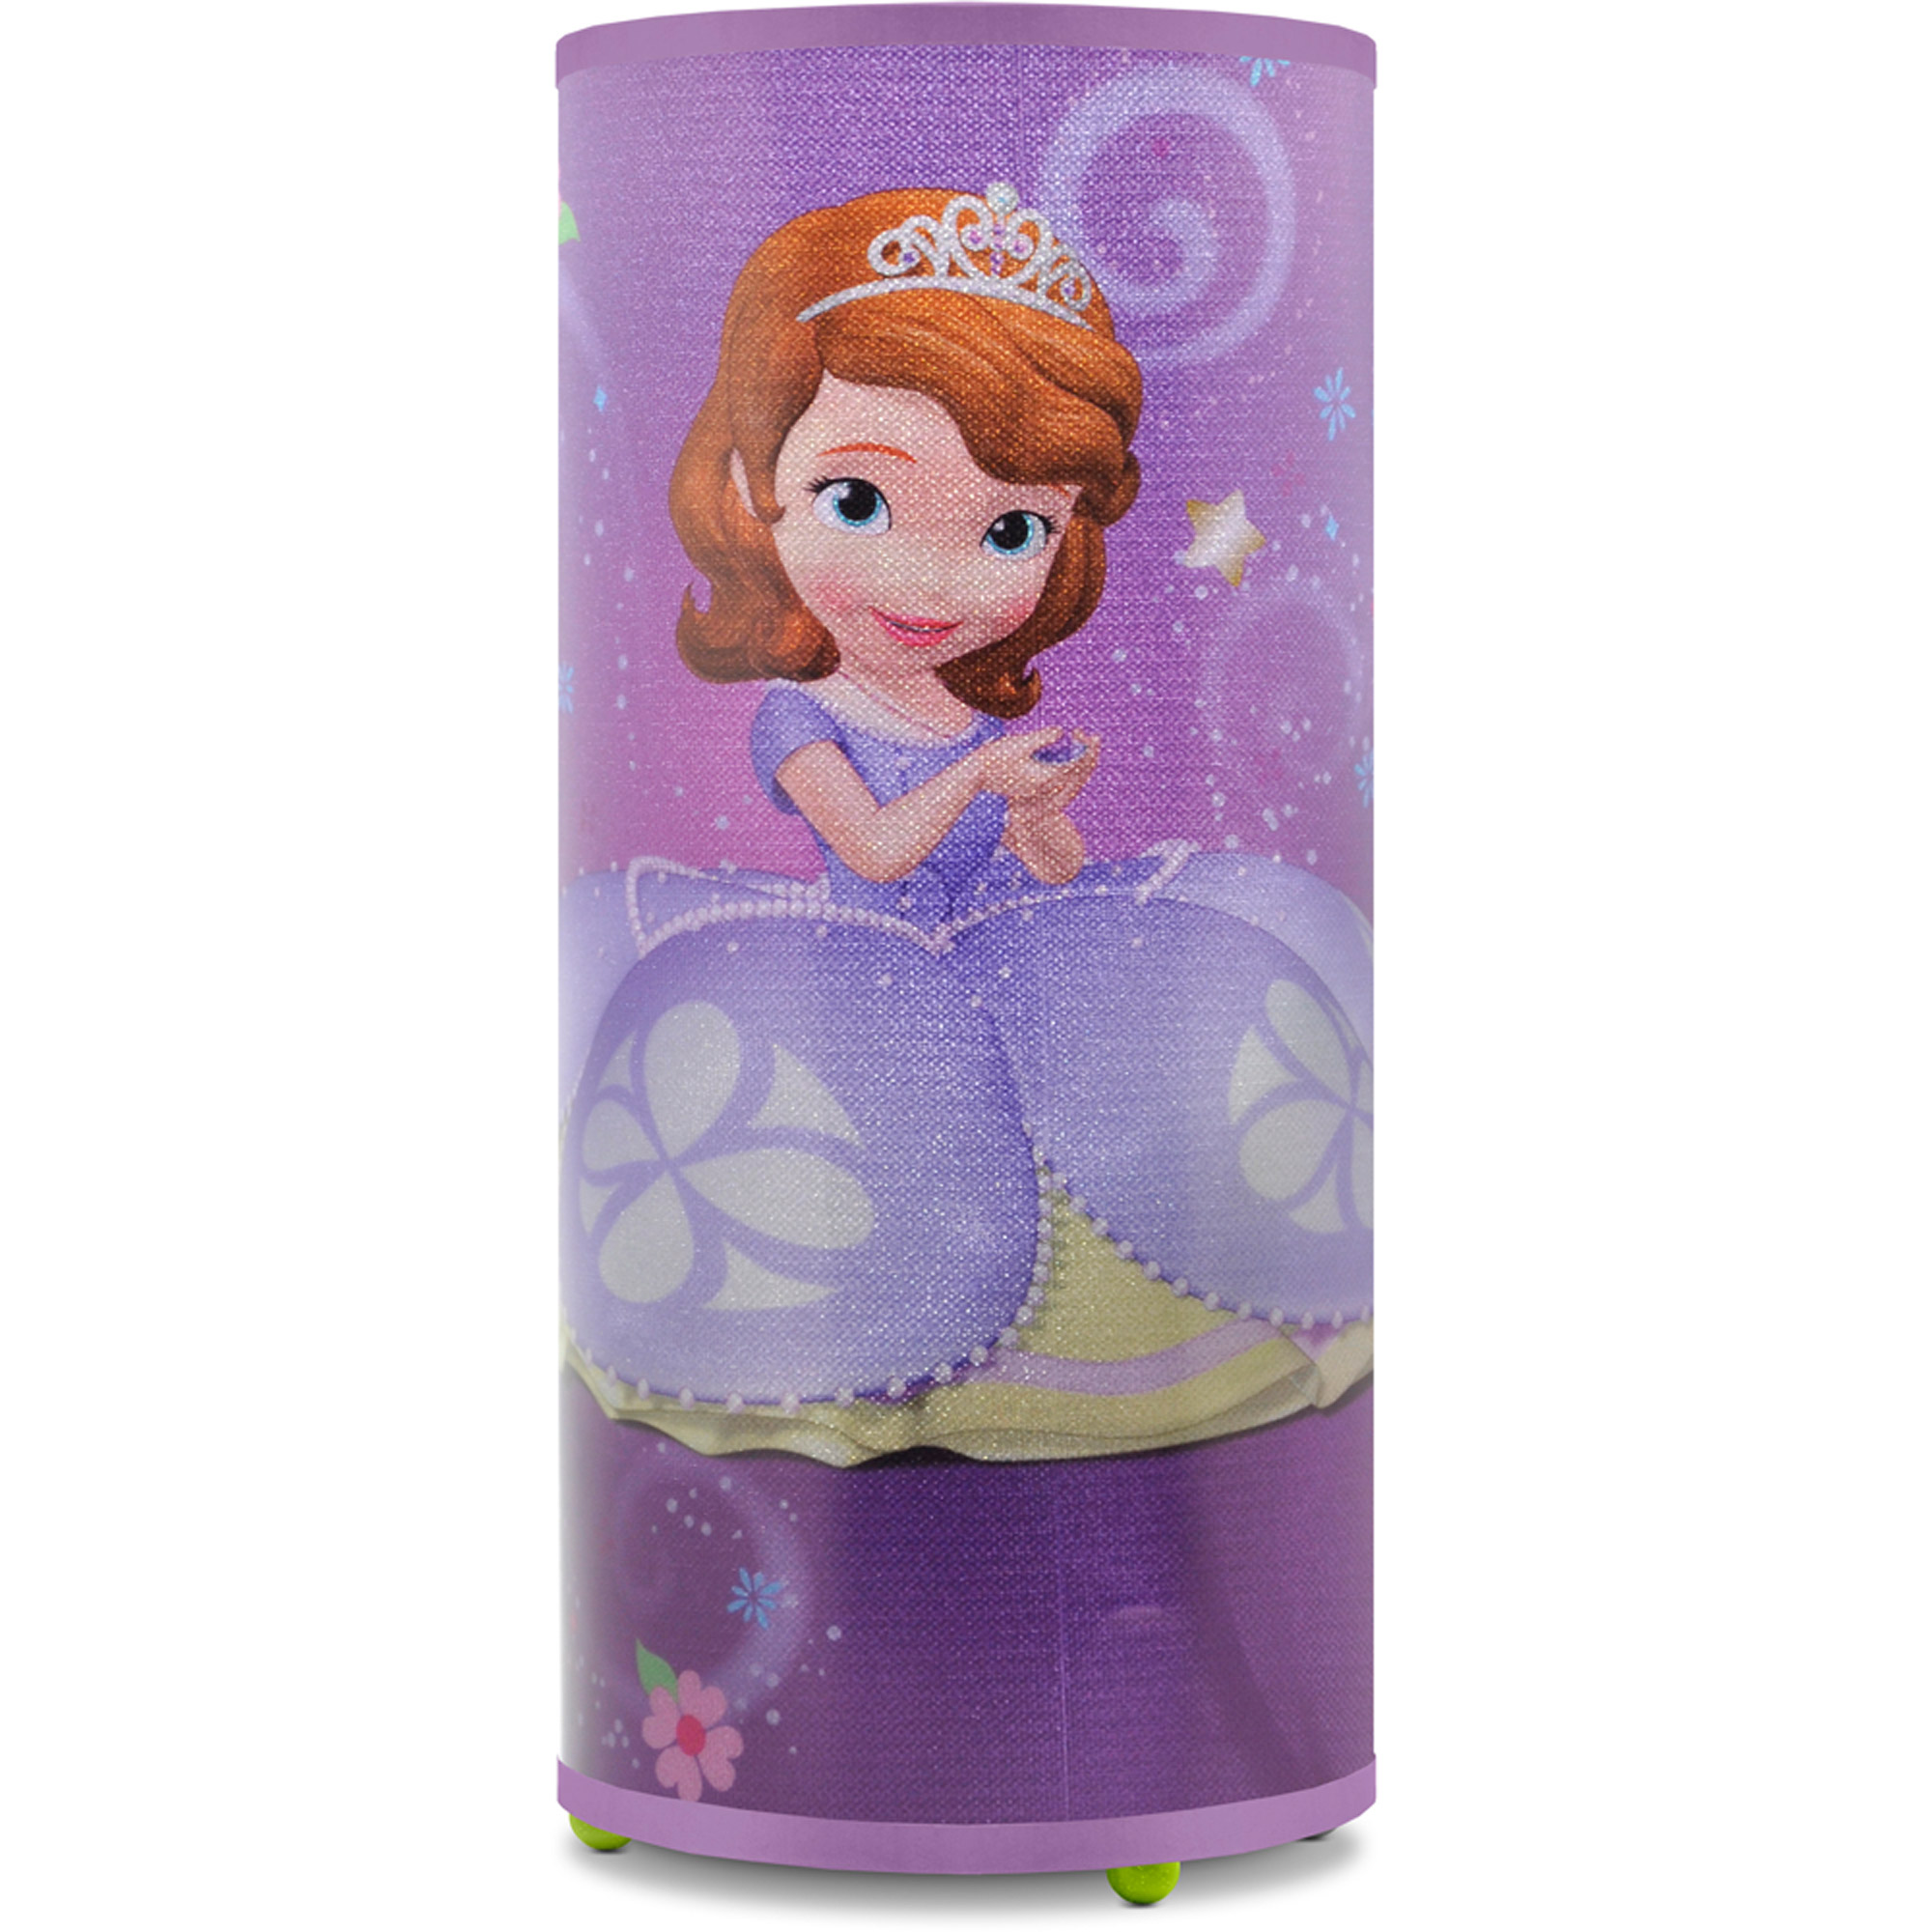 "Disney Sofia the First Cylinder Glitter Lamp- 10""H x 5""D x 5""W"